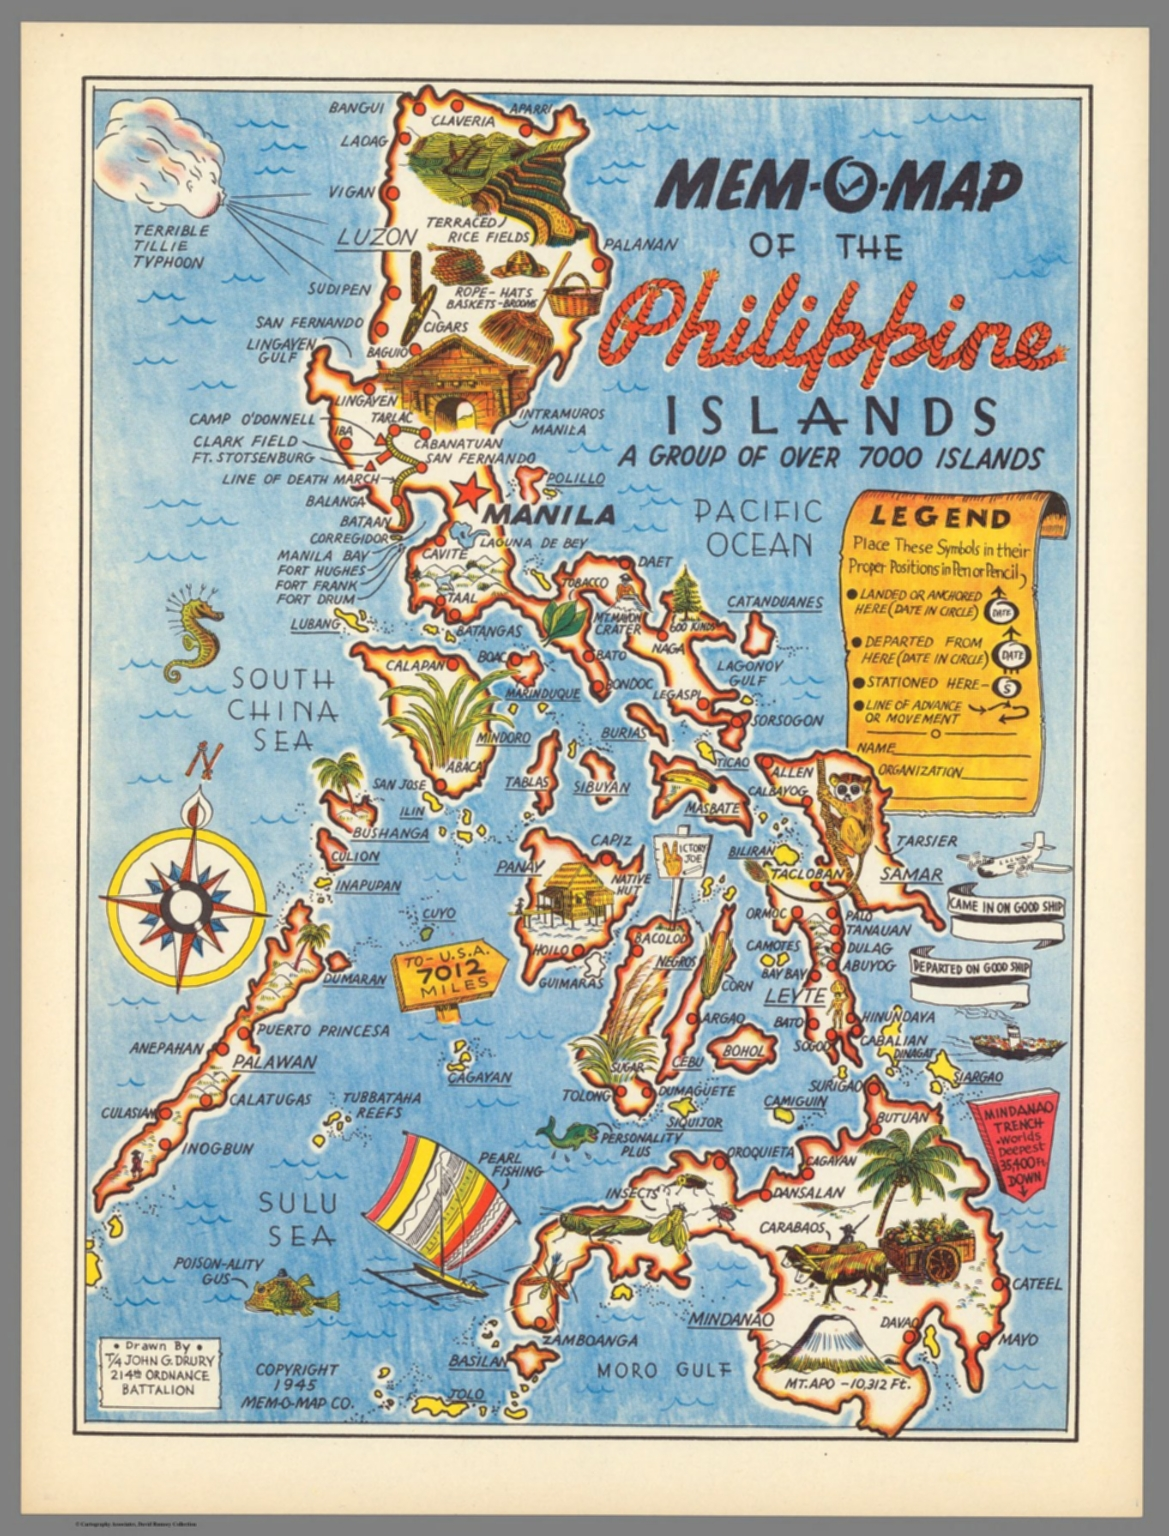 Mem o map of the philippine islands david rumsey historical map mem o map of the philippine islands gumiabroncs Images